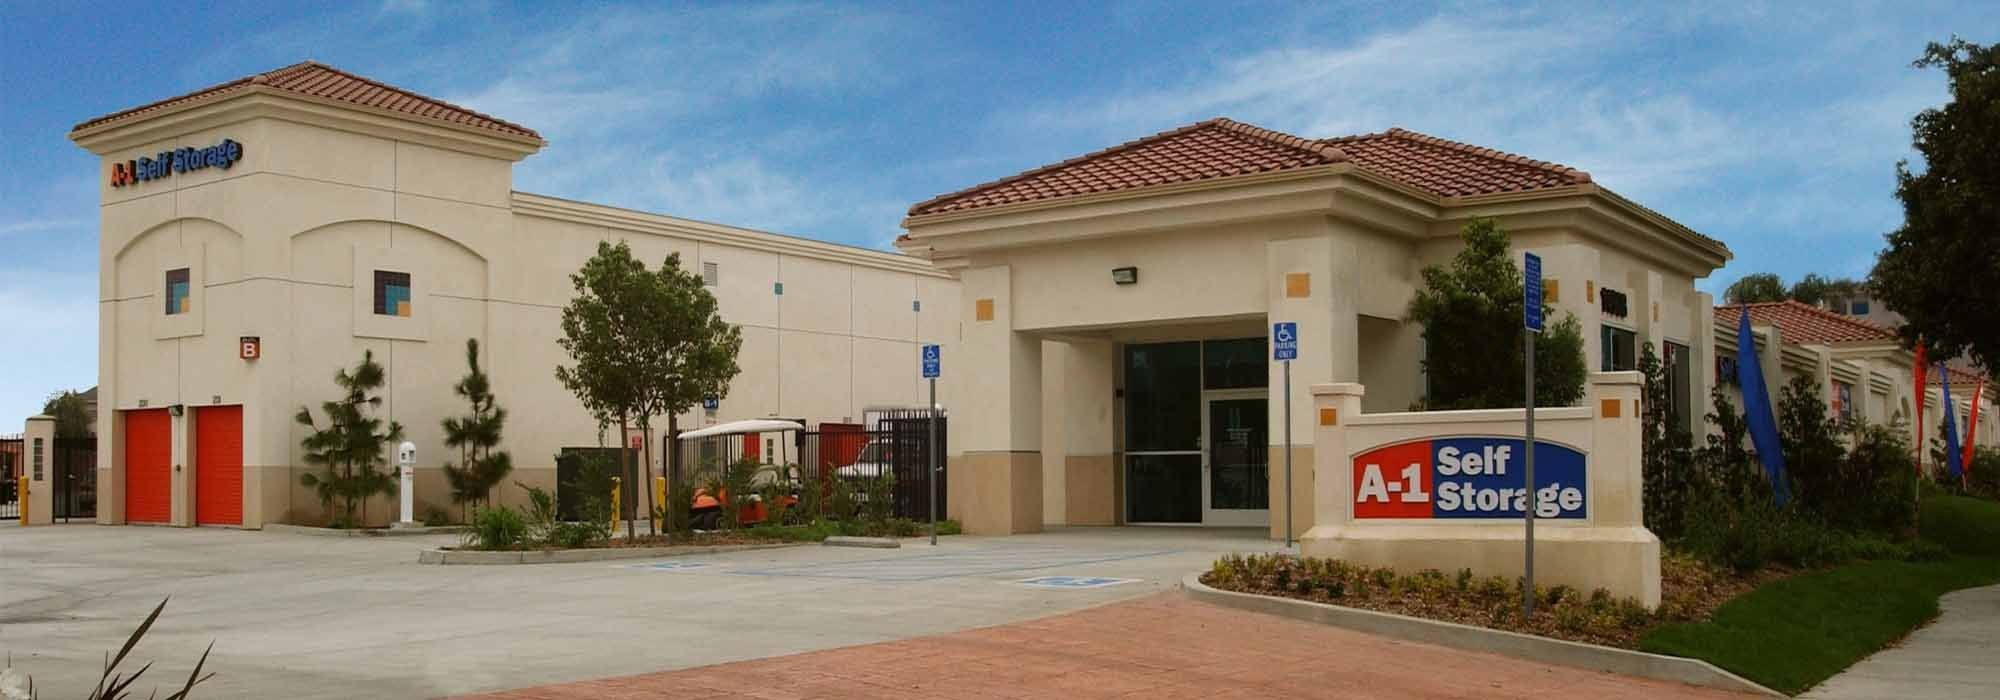 Self storage in Paramount CA